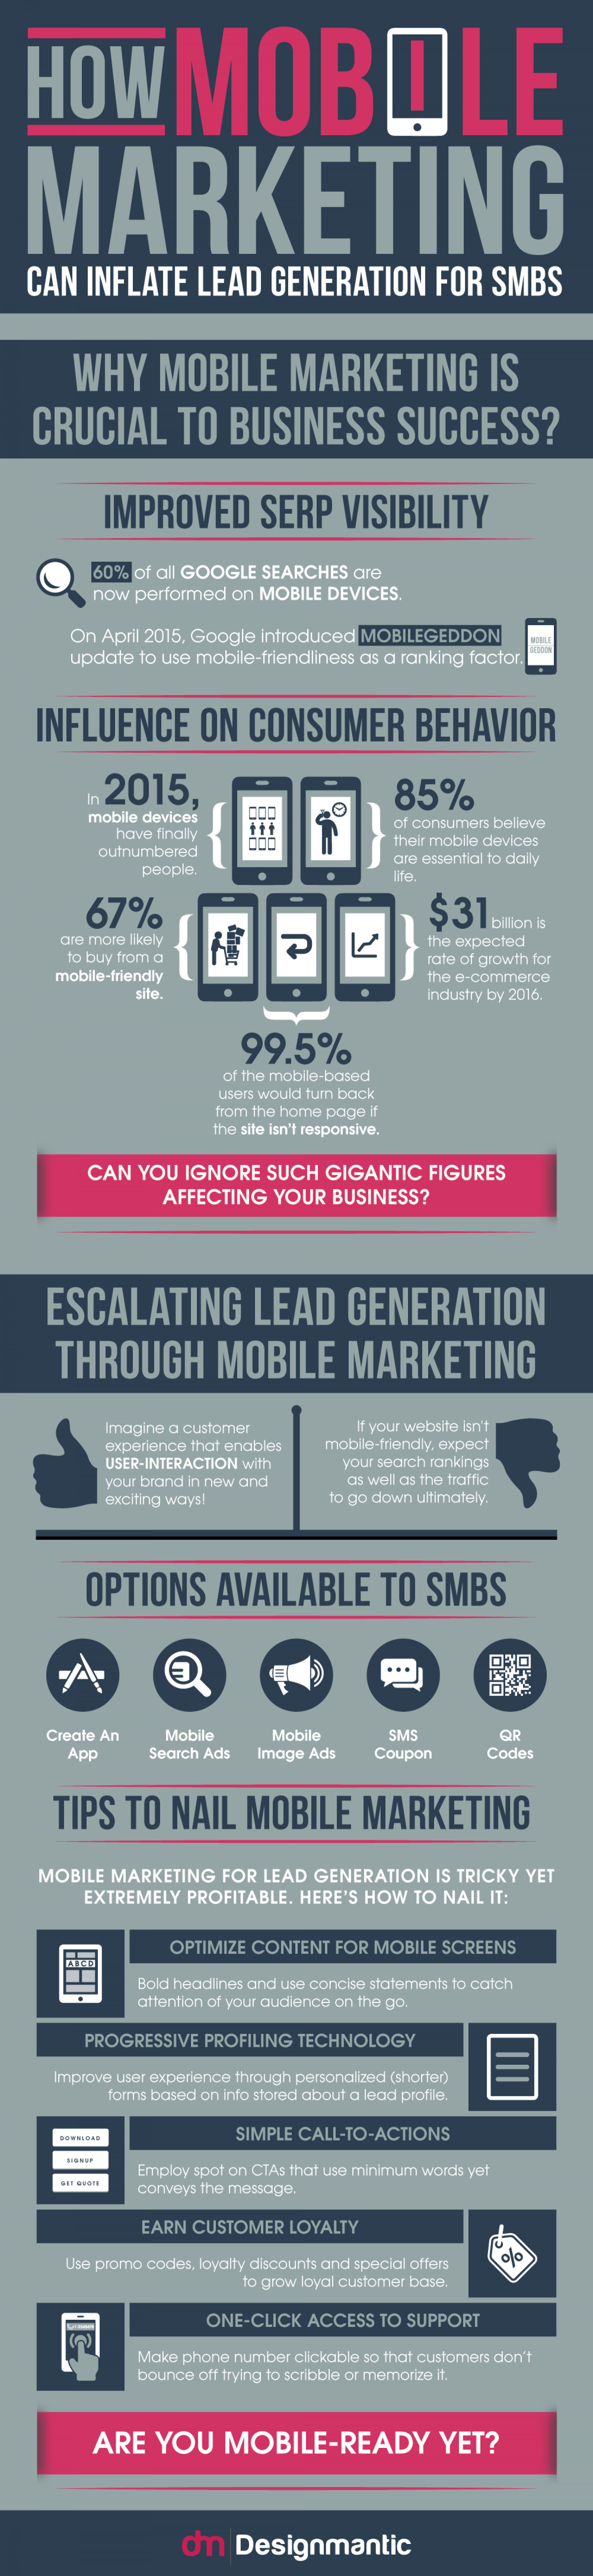 How Mobile Marketing Can Inflate Lead Generation for SMBs  Infographic